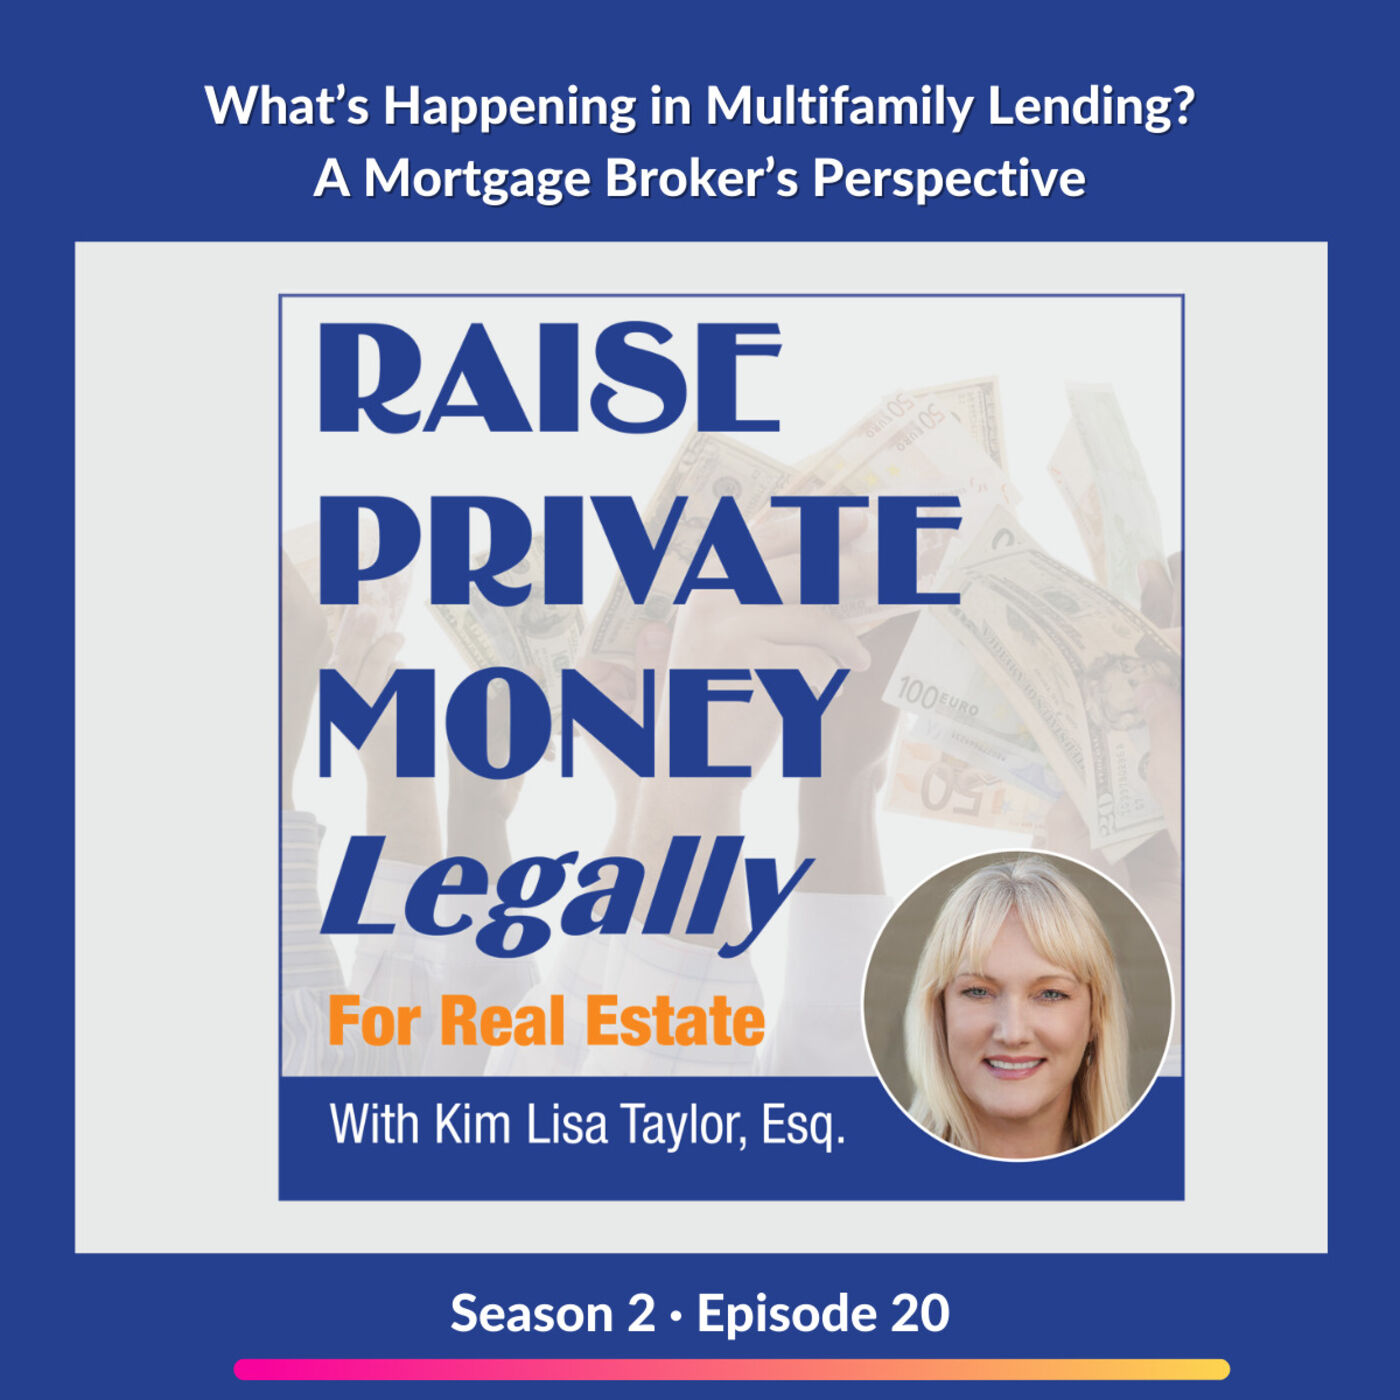 S2E20: What's Happening in Multifamily Lending? A Mortgage Broker's Perspective.